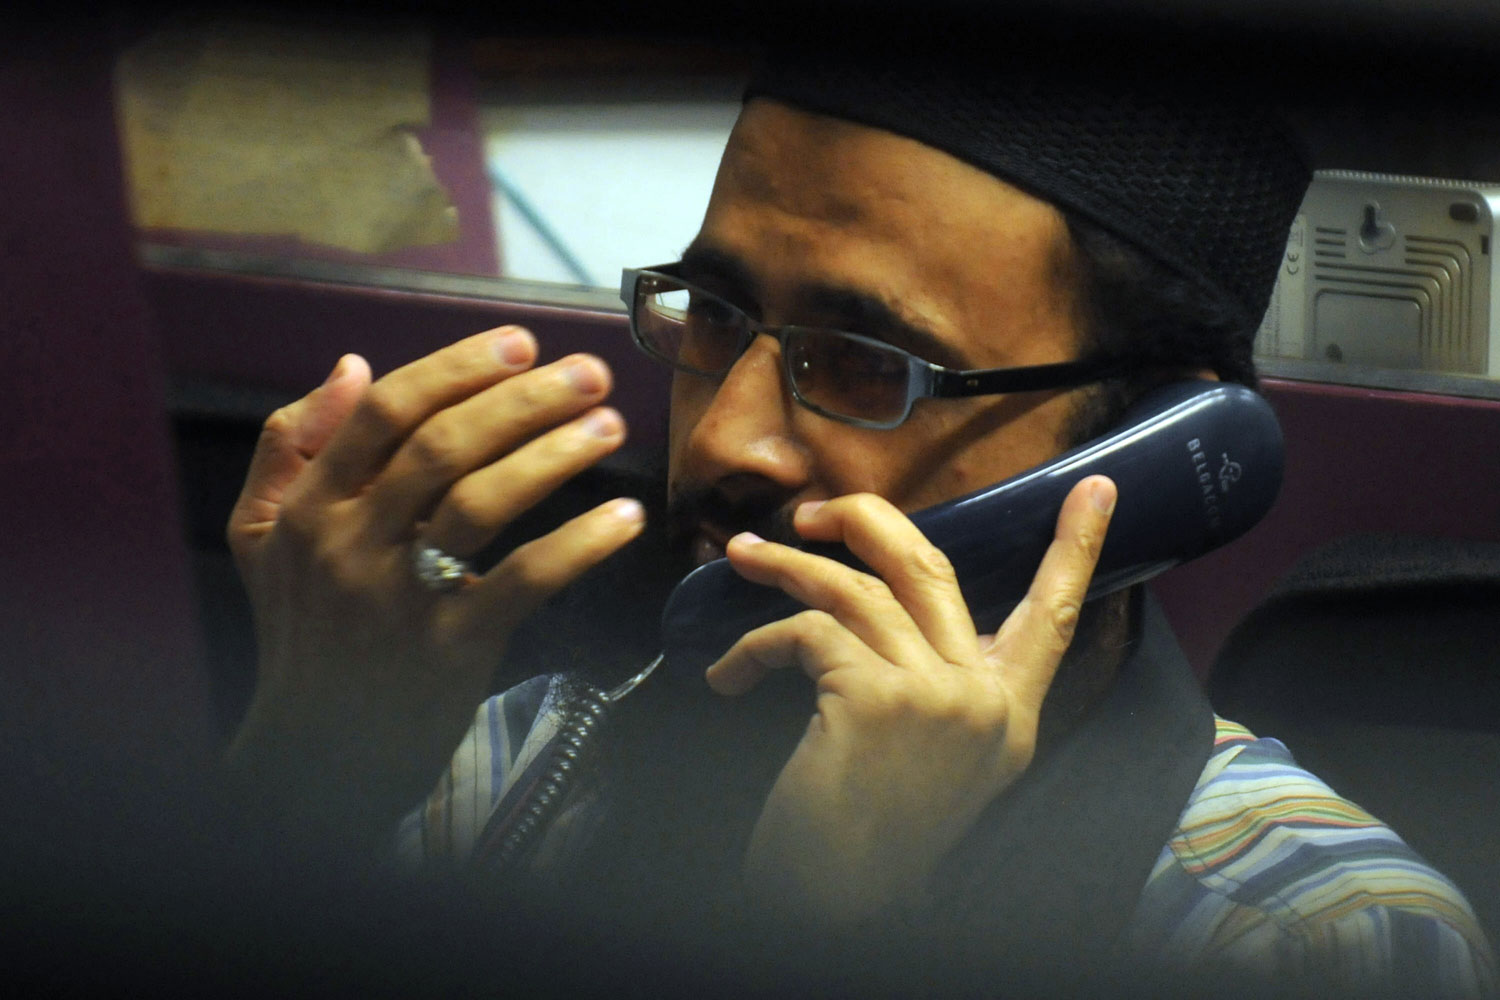 A Pakistani stockbroker talks on a phone during the trading session at the Karachi Stock Exchange (KSE) in Karachi, August 10, 2011. The benchmark KSE-100 index was 11308.99, with increase of 274.07 points in the morning session.